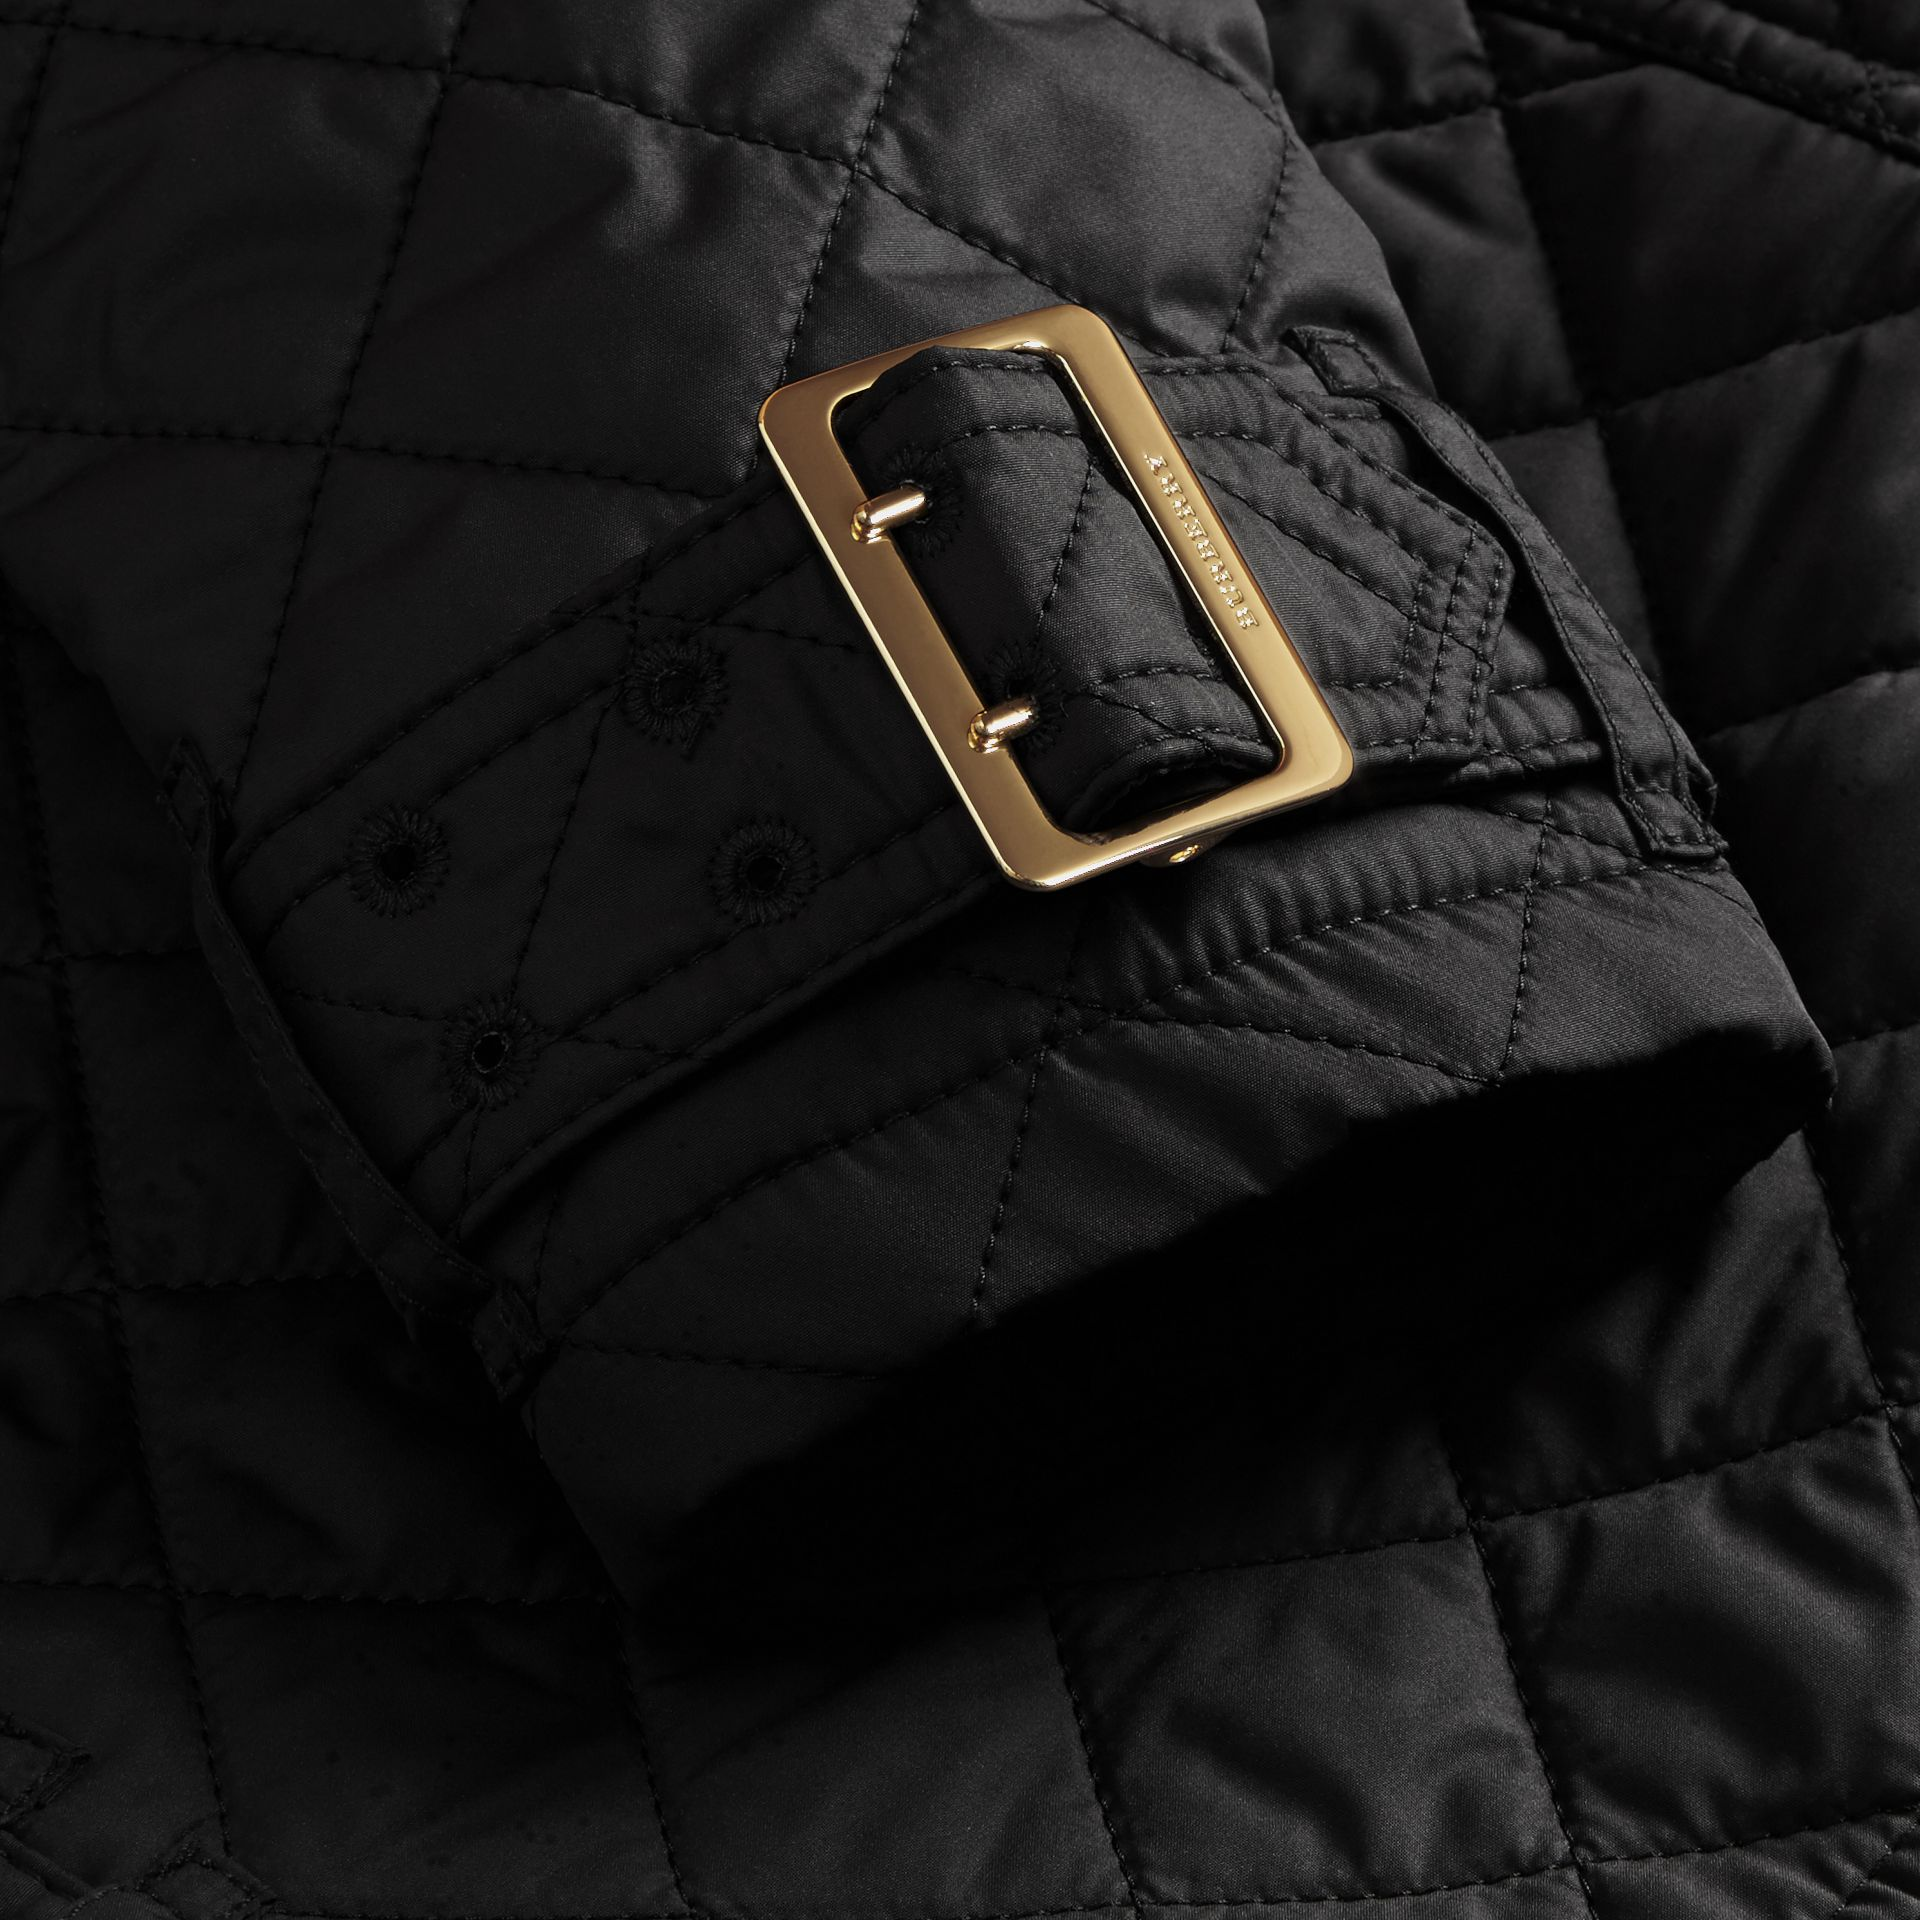 Buckle Detail Technical Field Jacket Black - gallery image 2